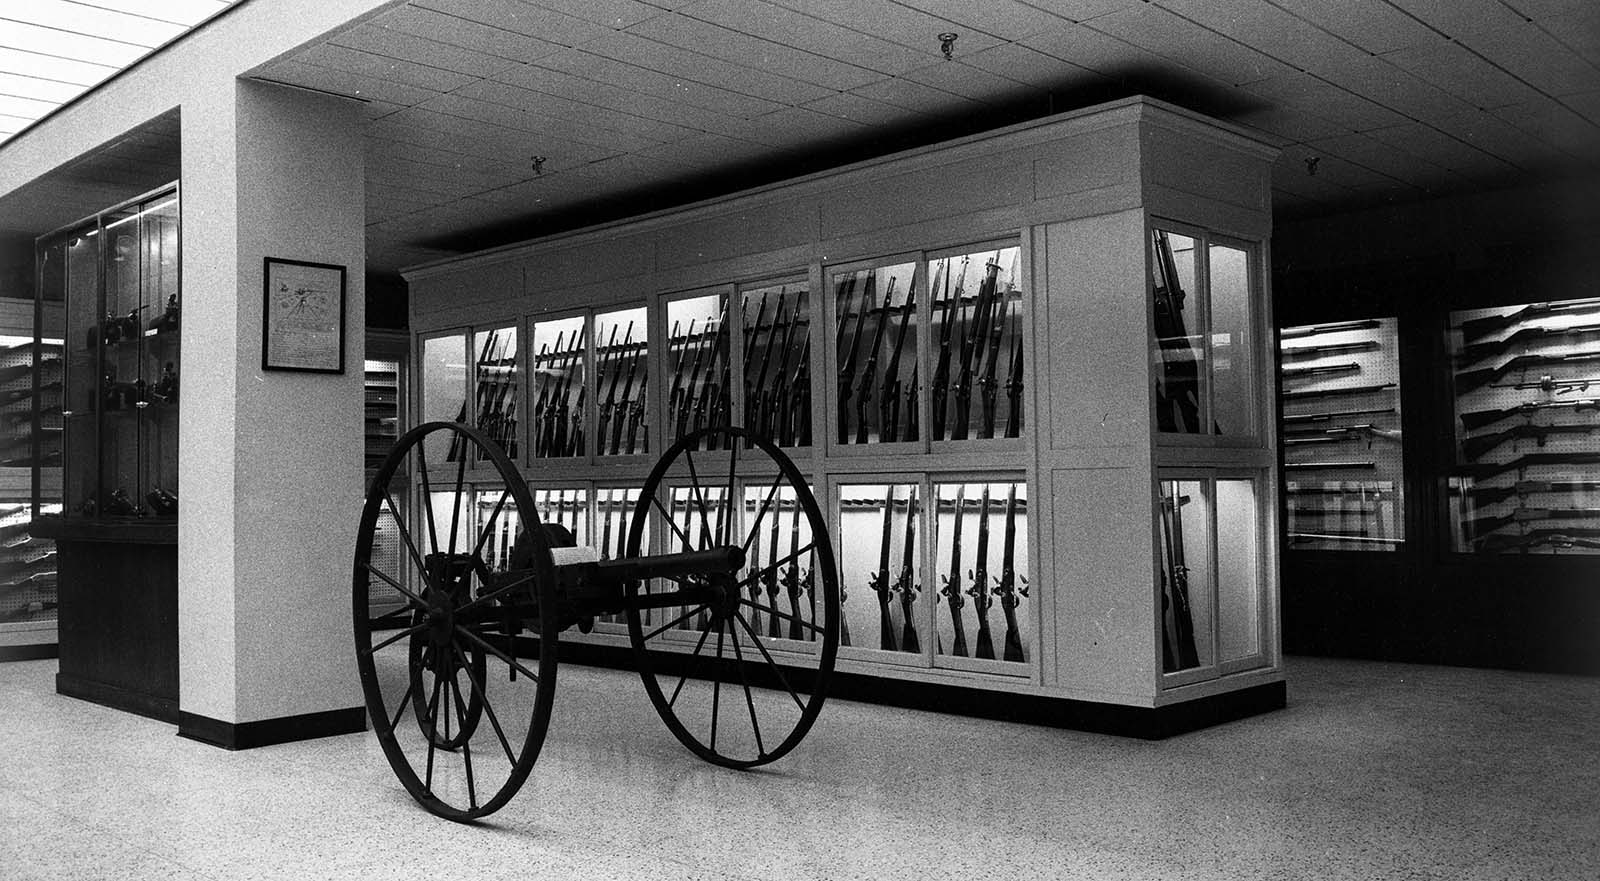 Winchester Gun Museum, New Haven, Connecticut. MS 20 Winchester Repeating Arms Company Collection. P.20.4841